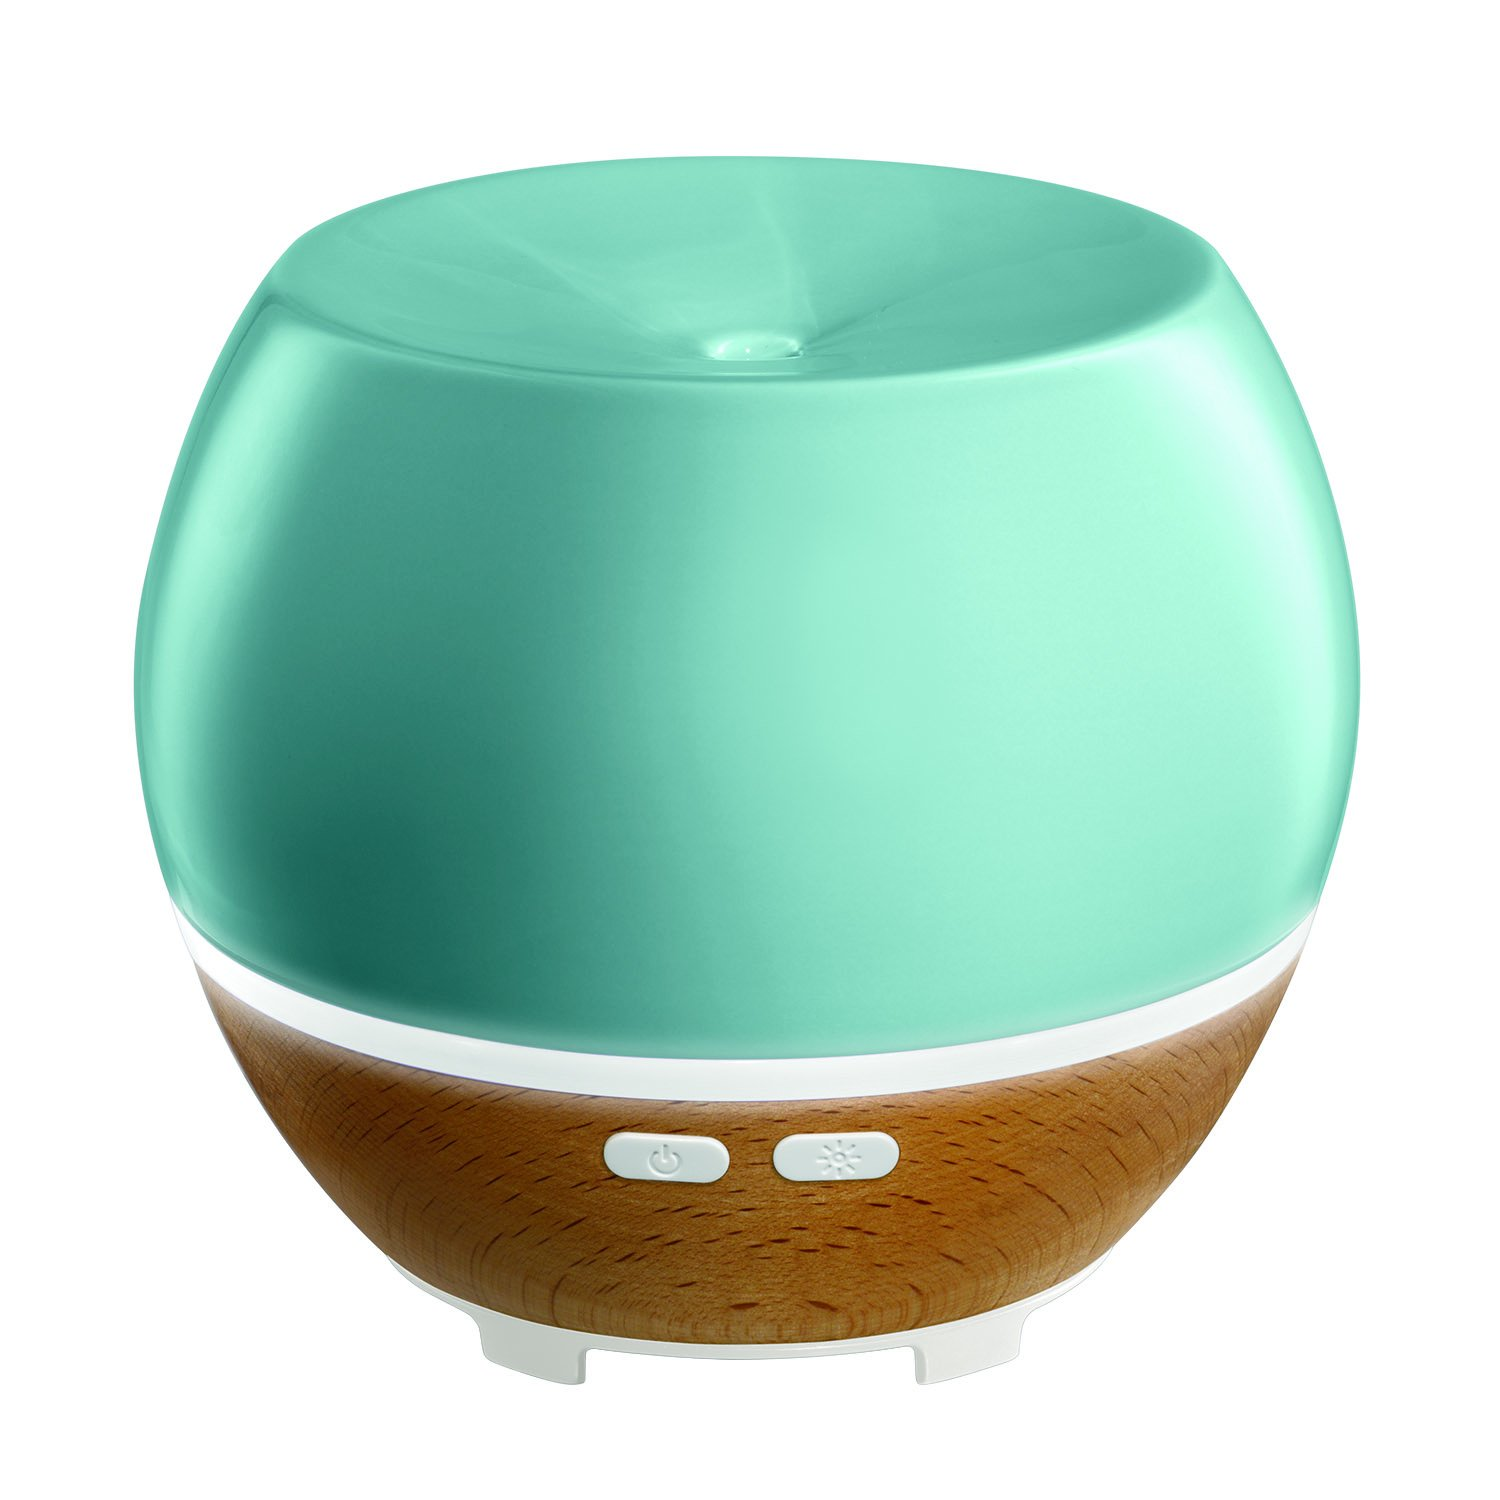 Ellia, Awaken Ultrasonic Essential Oil Aromatherapy Diffuser with 3 Oil Samples, 6 Hours Continuous Runtime and Mood Light. 130mL Reservoir Size. Ceramic & Wood, Blue ARM-530BL